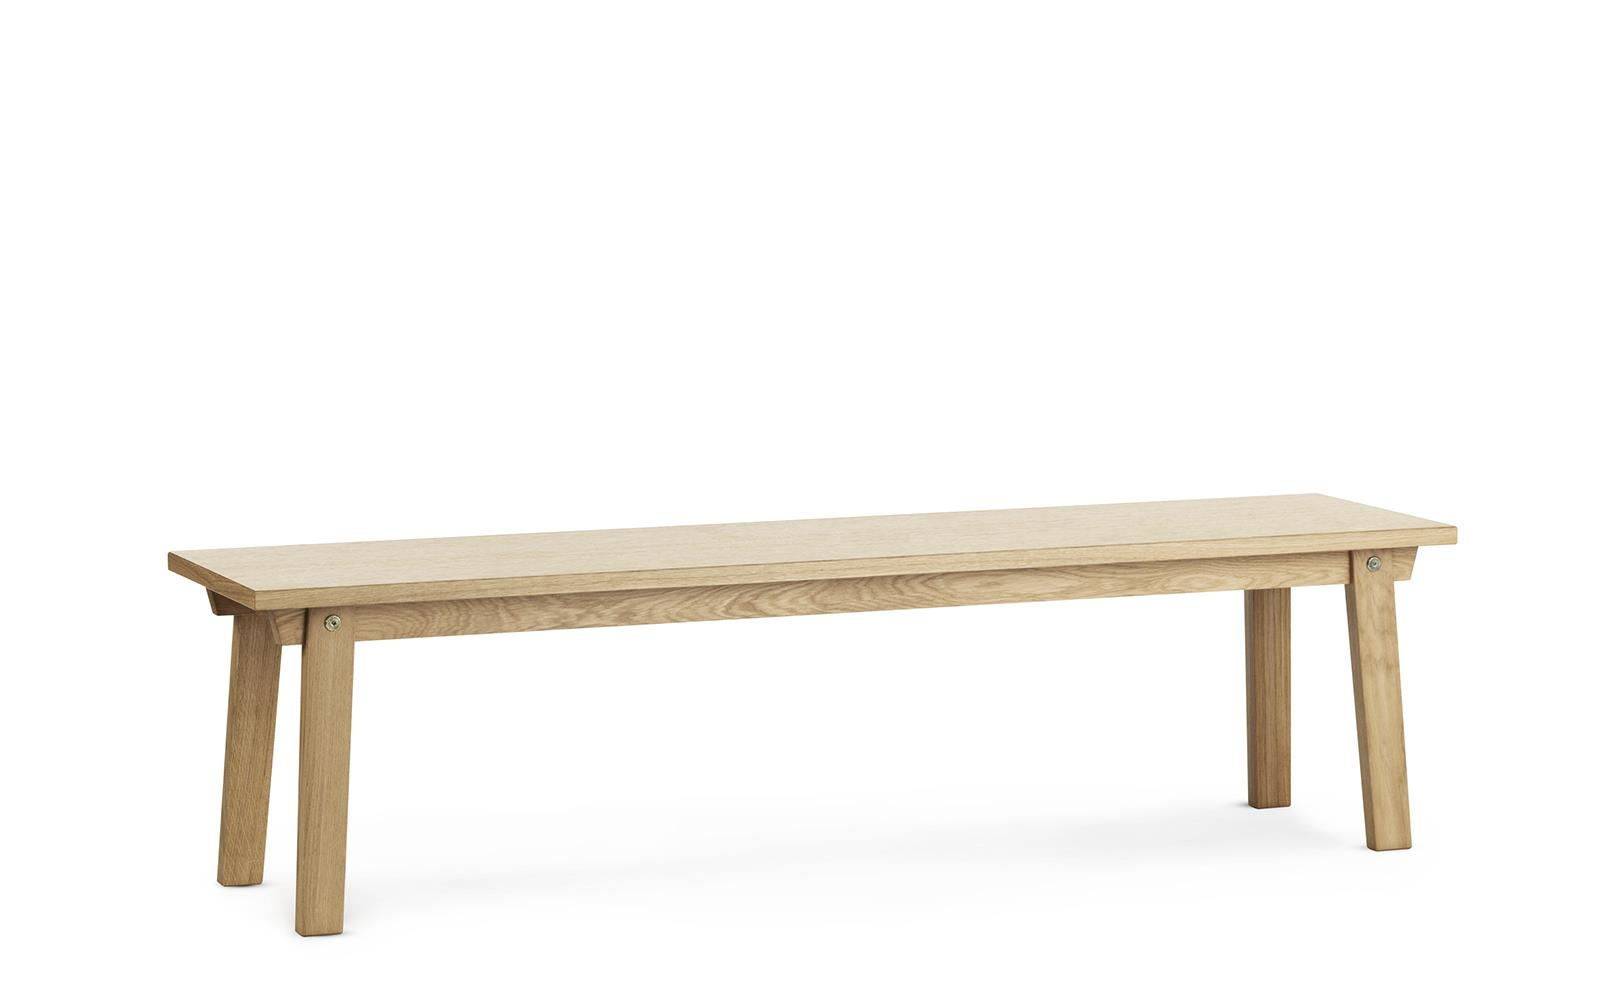 Slice Bench Vol 2 38 x 160 cm1